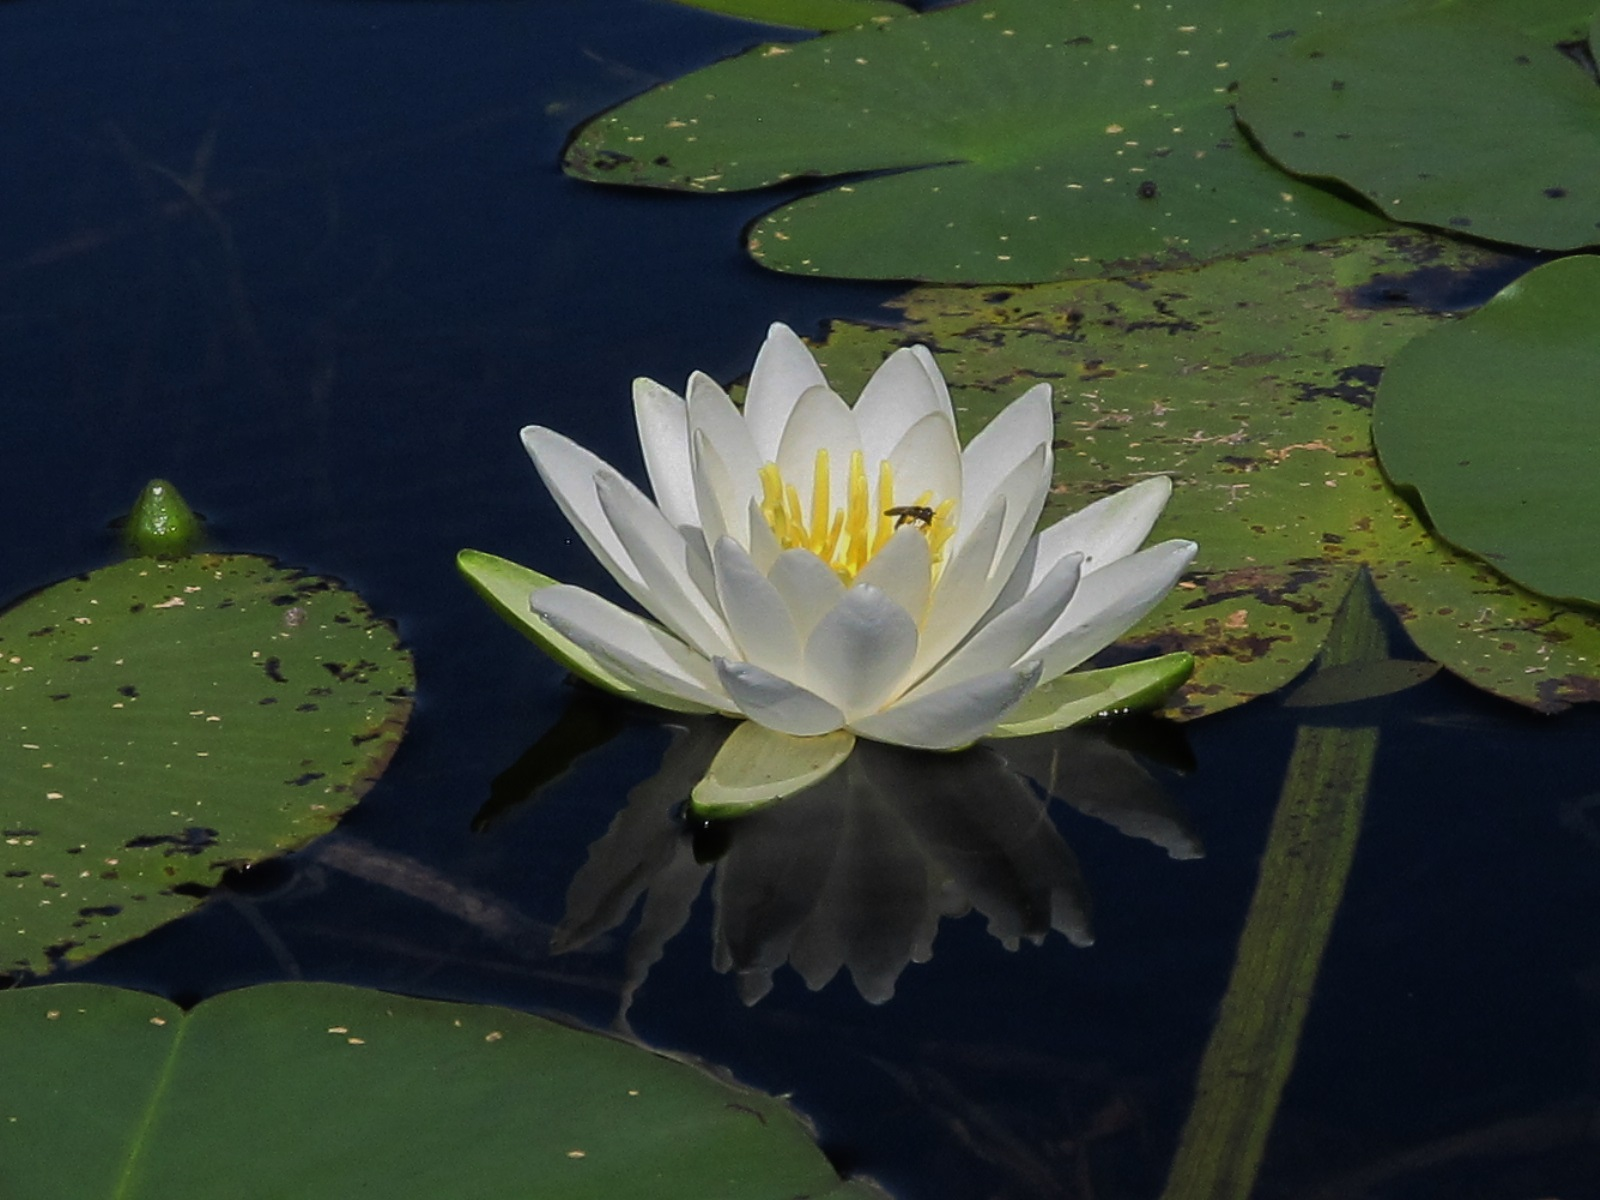 The White Water Lilly